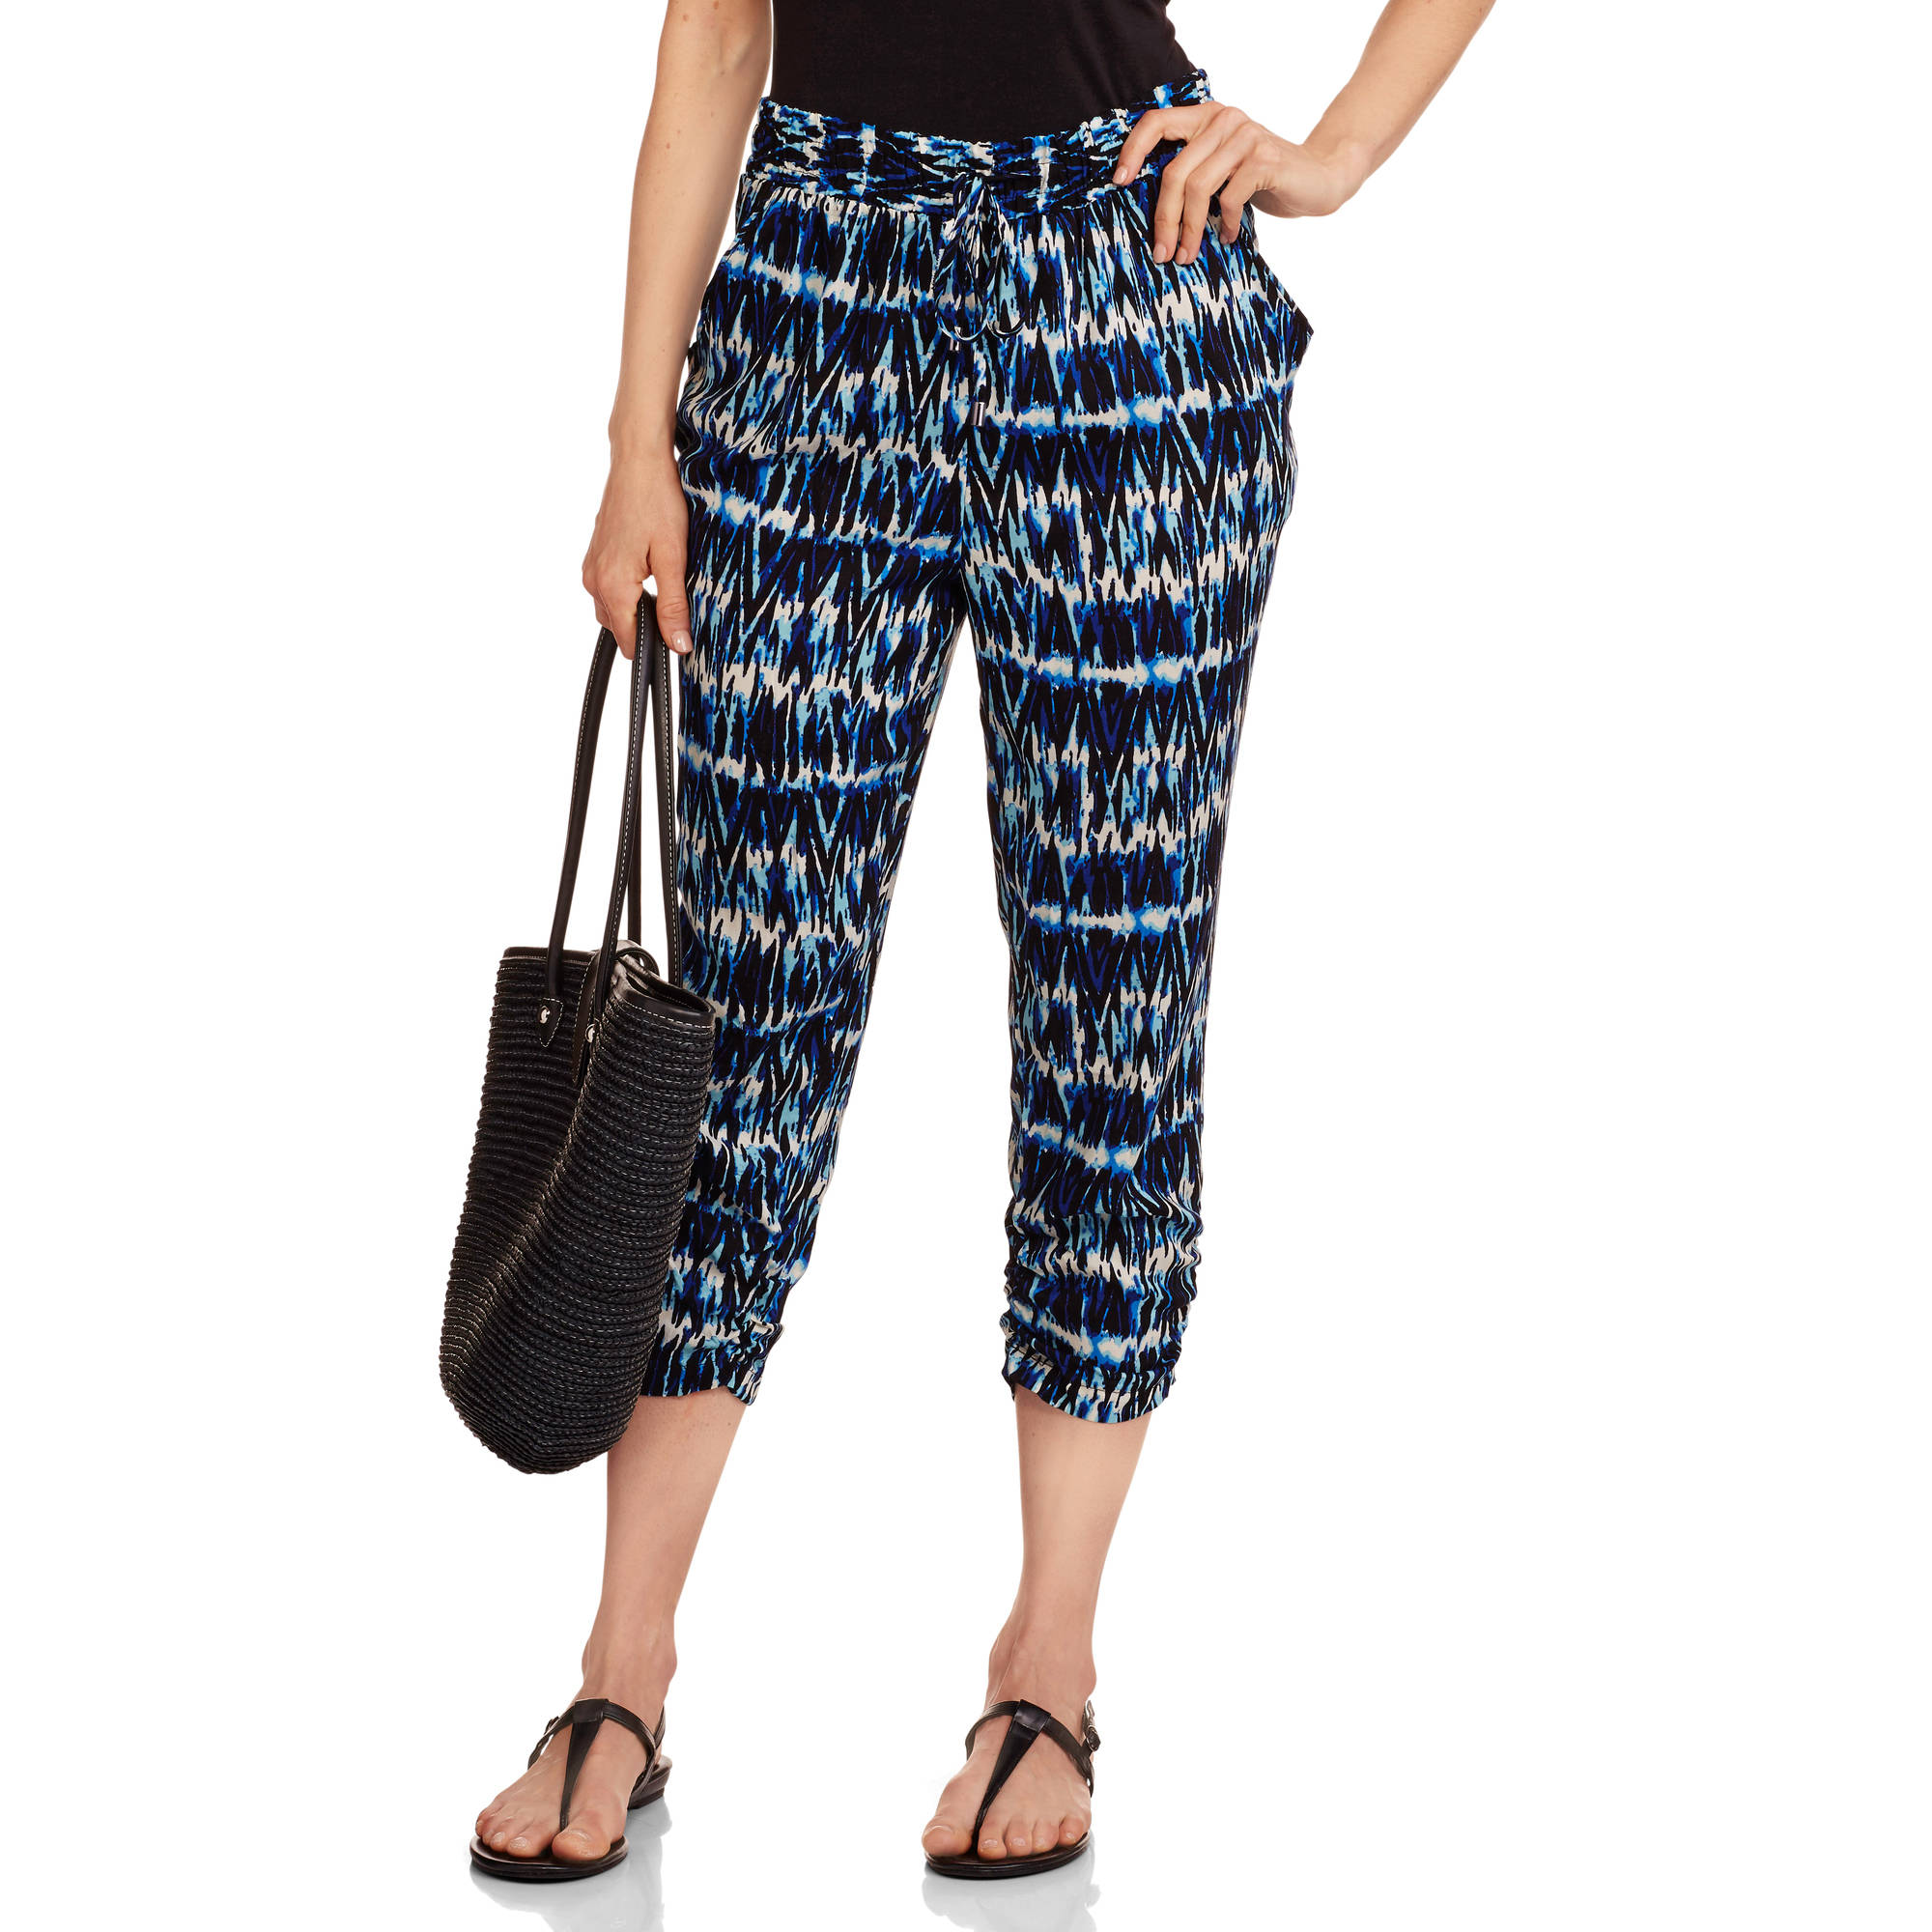 French Laundry Women's Woven Jogger Capris